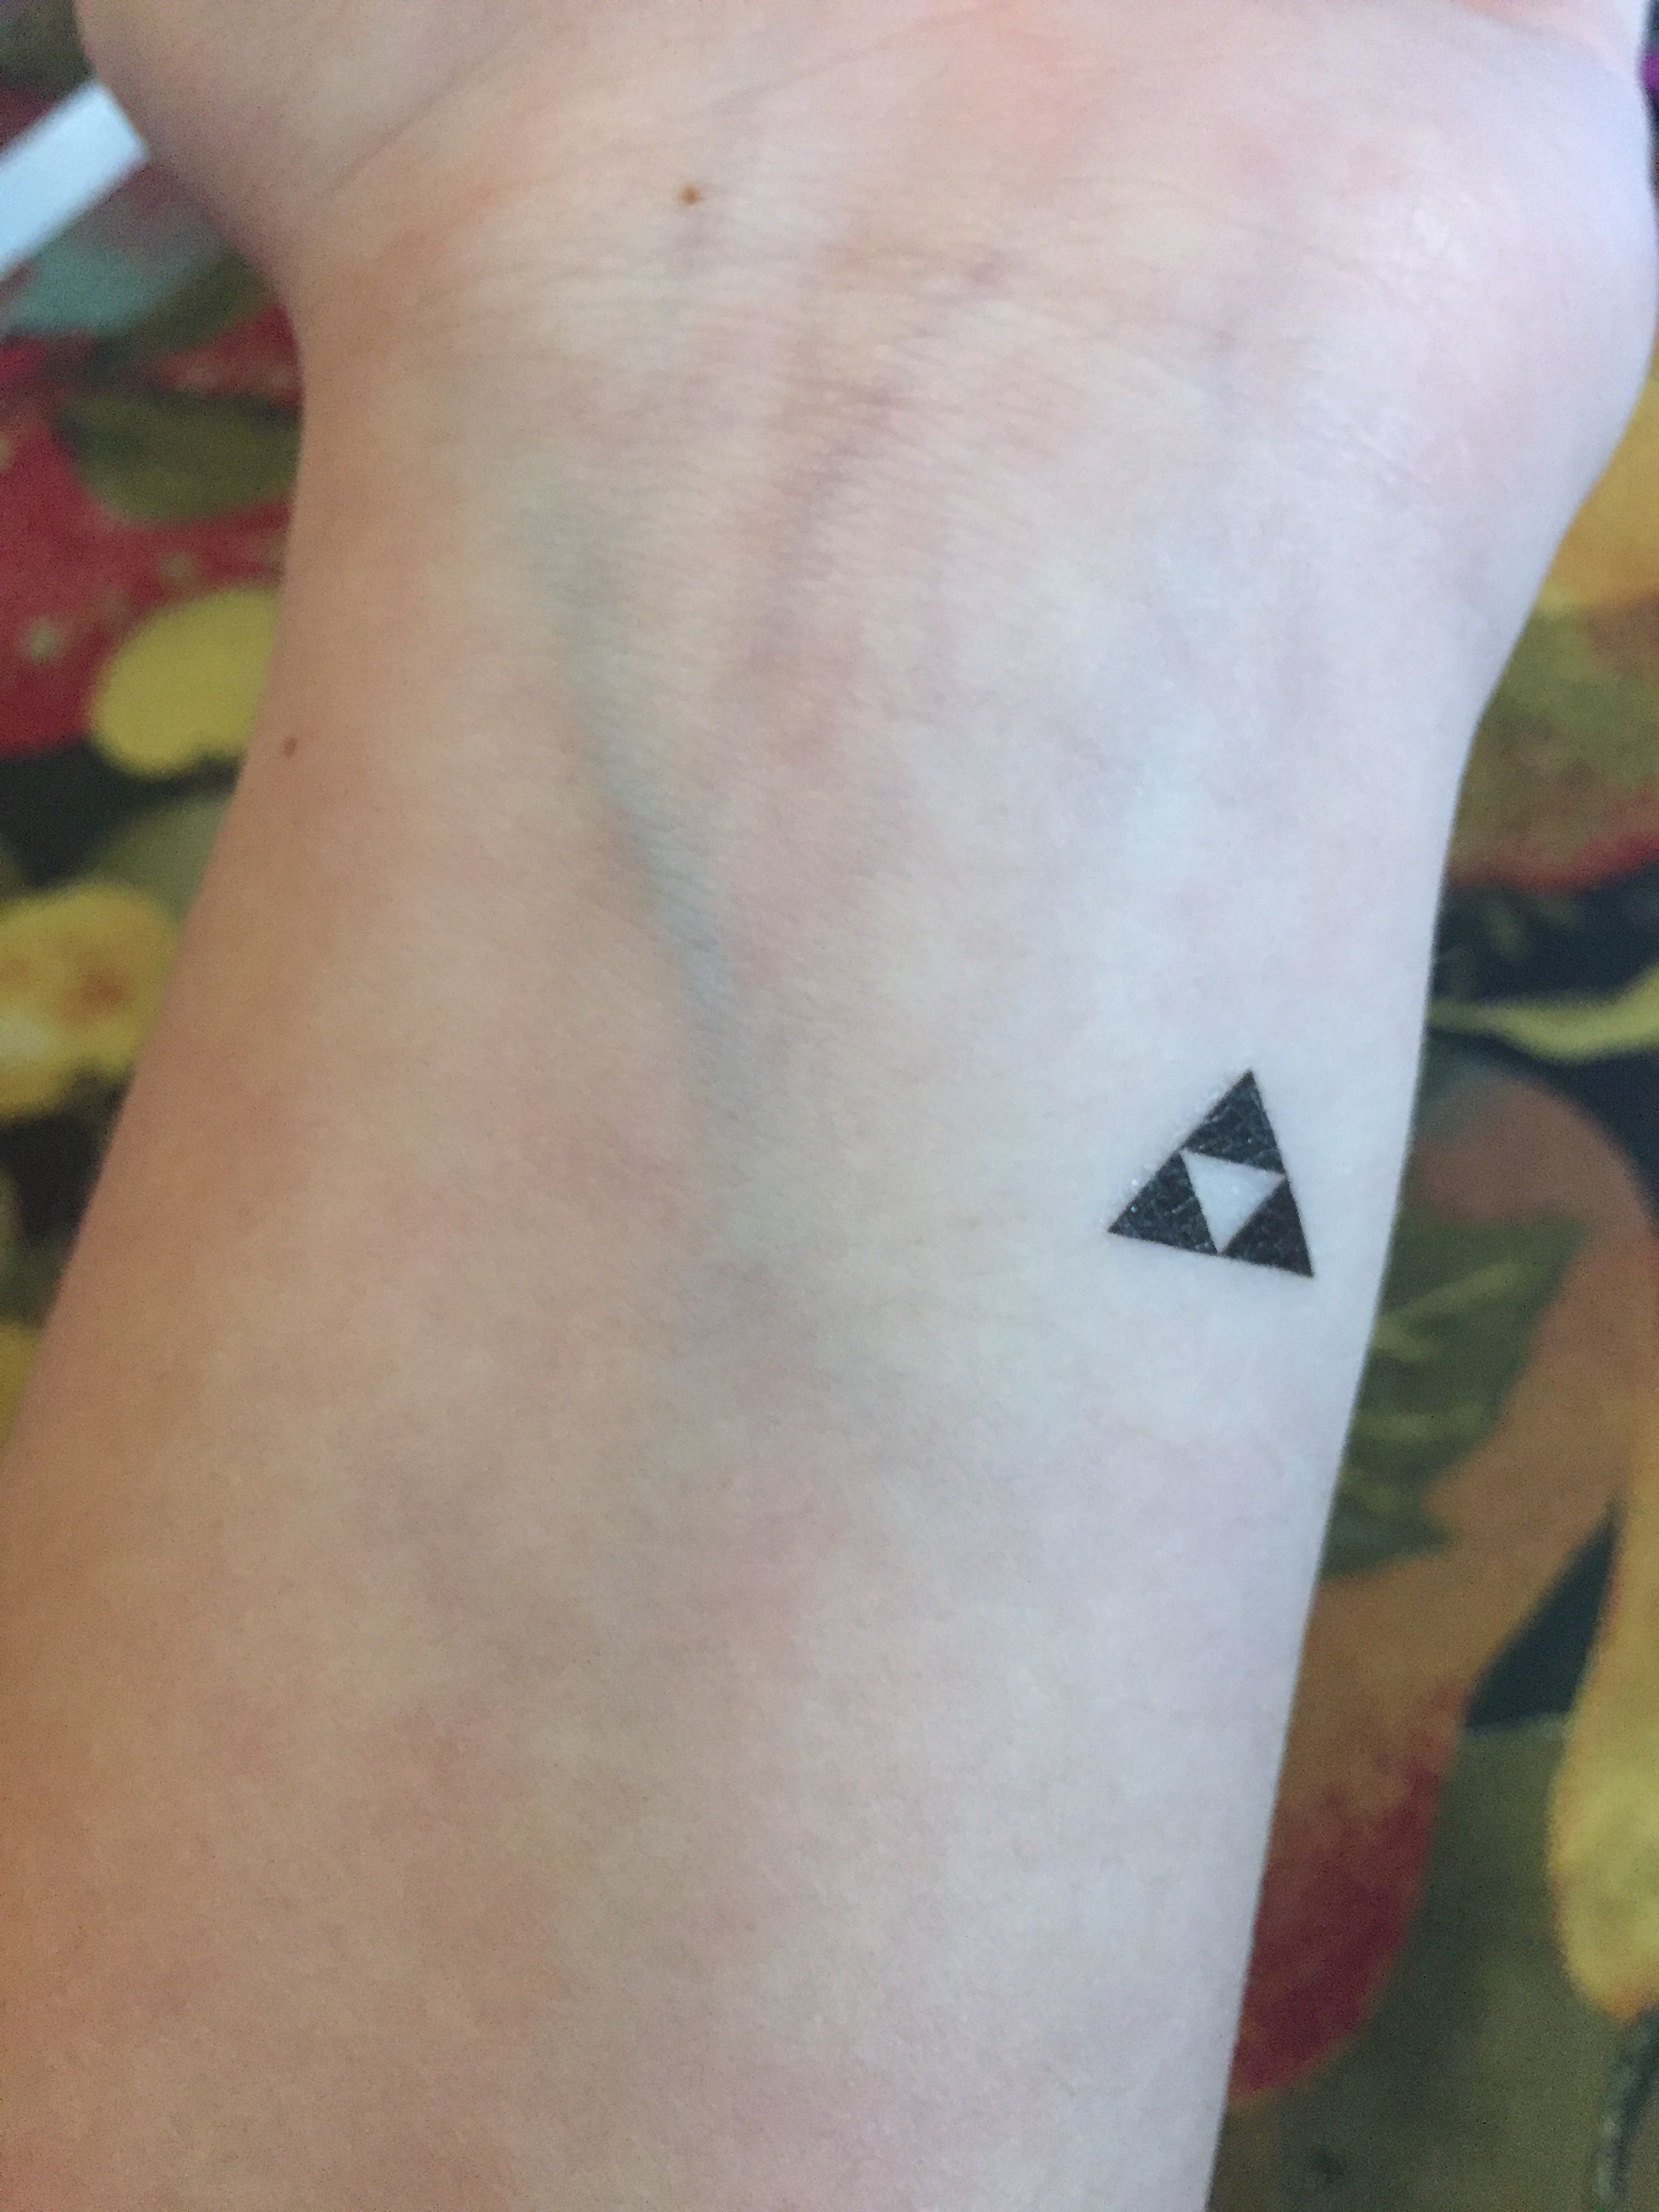 The Legend Of Zelda Mini Triforce Tattoo Ink Tattoos Zelda